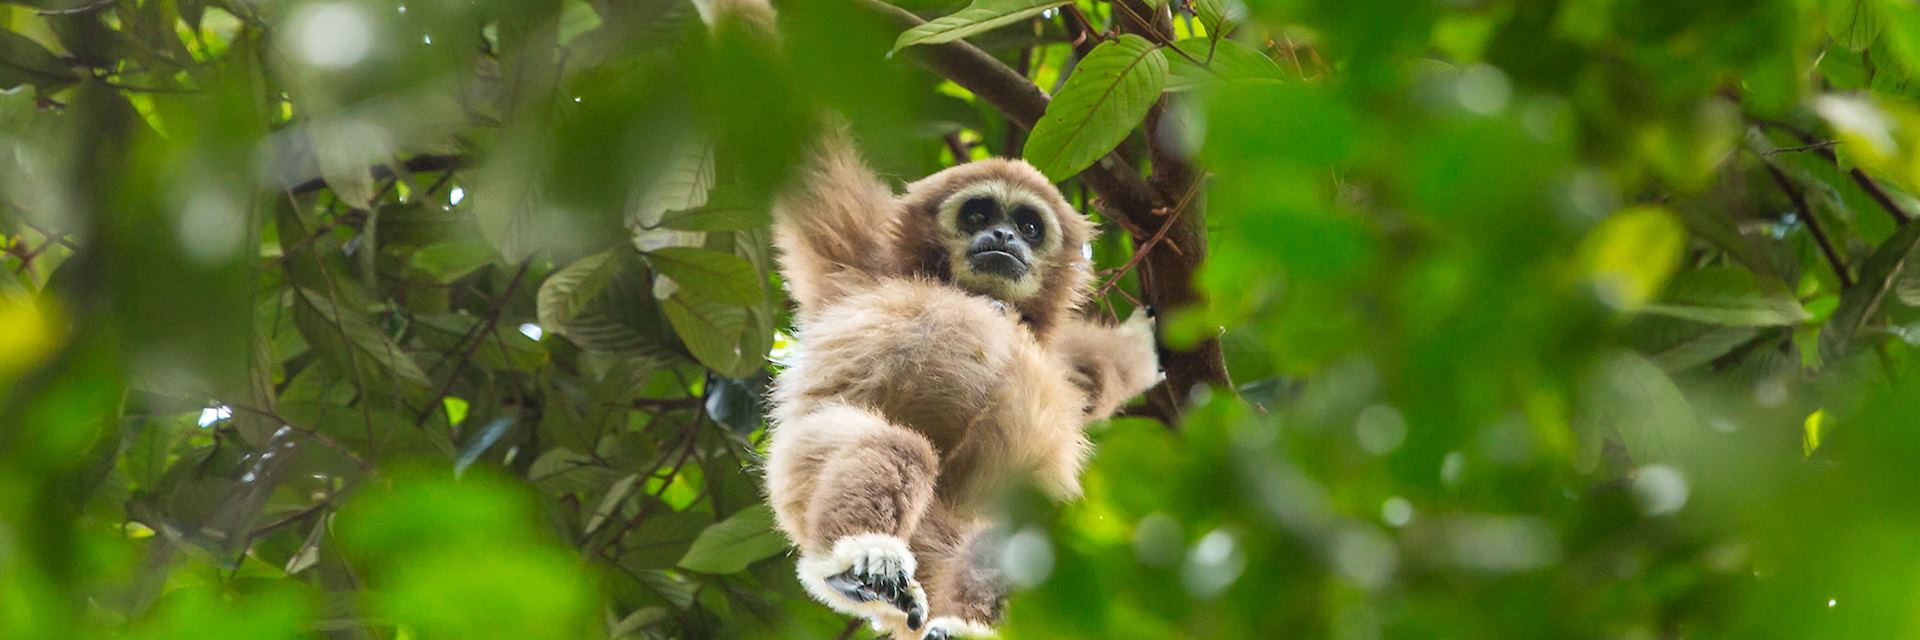 Gibbon, Gunung Leuser National Park